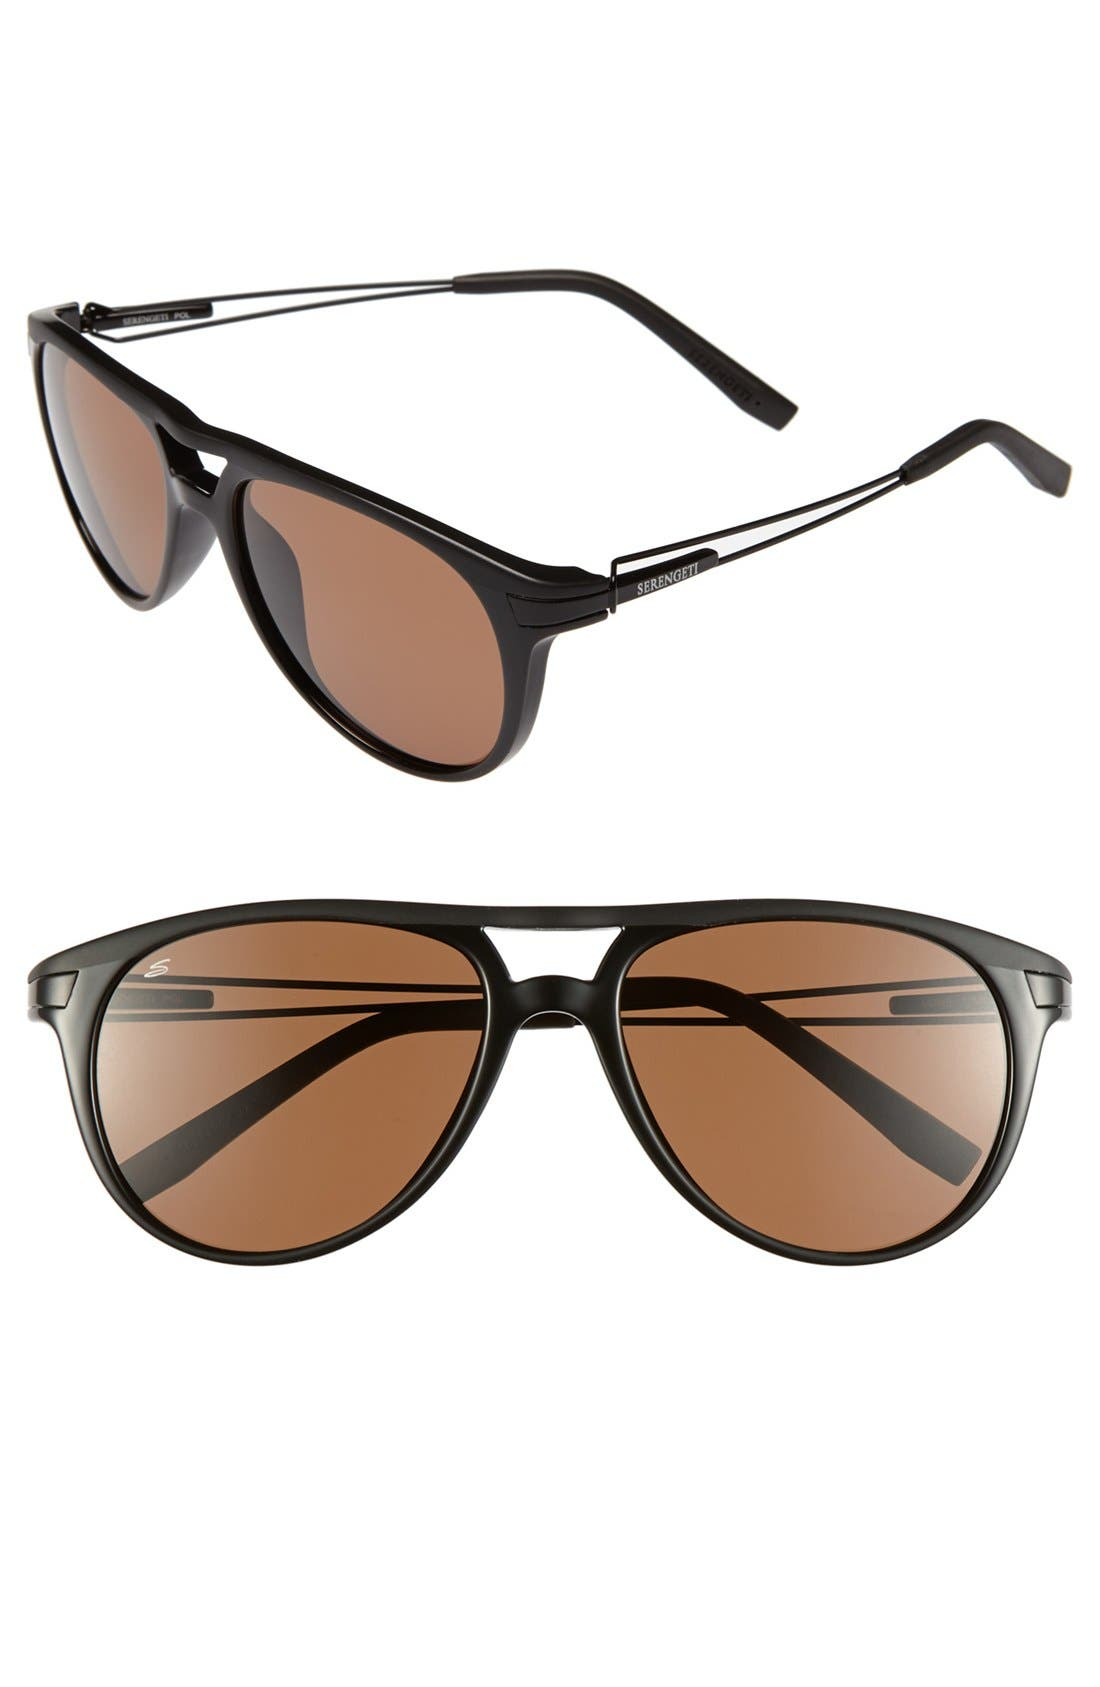 Main Image - Serengeti 'Udine' 62mm Polarized Sunglasses